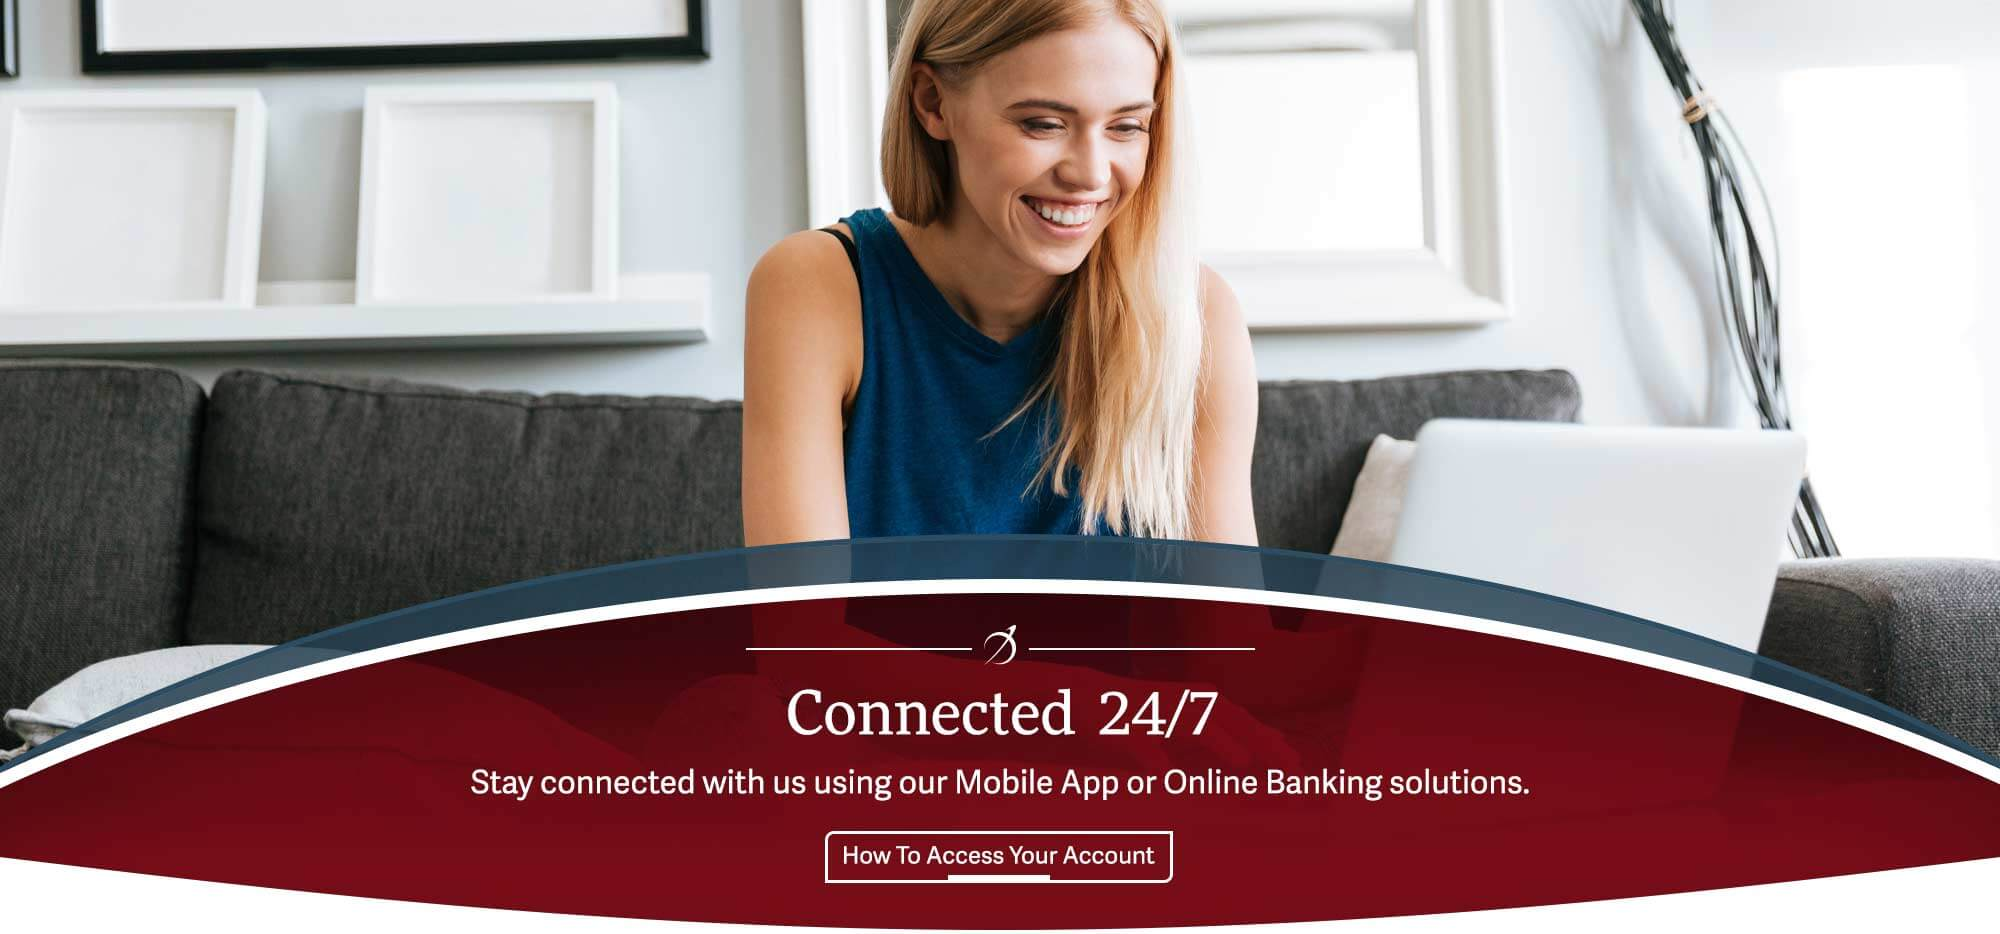 Connected  24/7. Stay connected with us using our Mobile App or Online Banking solutions. How To Access Your Account